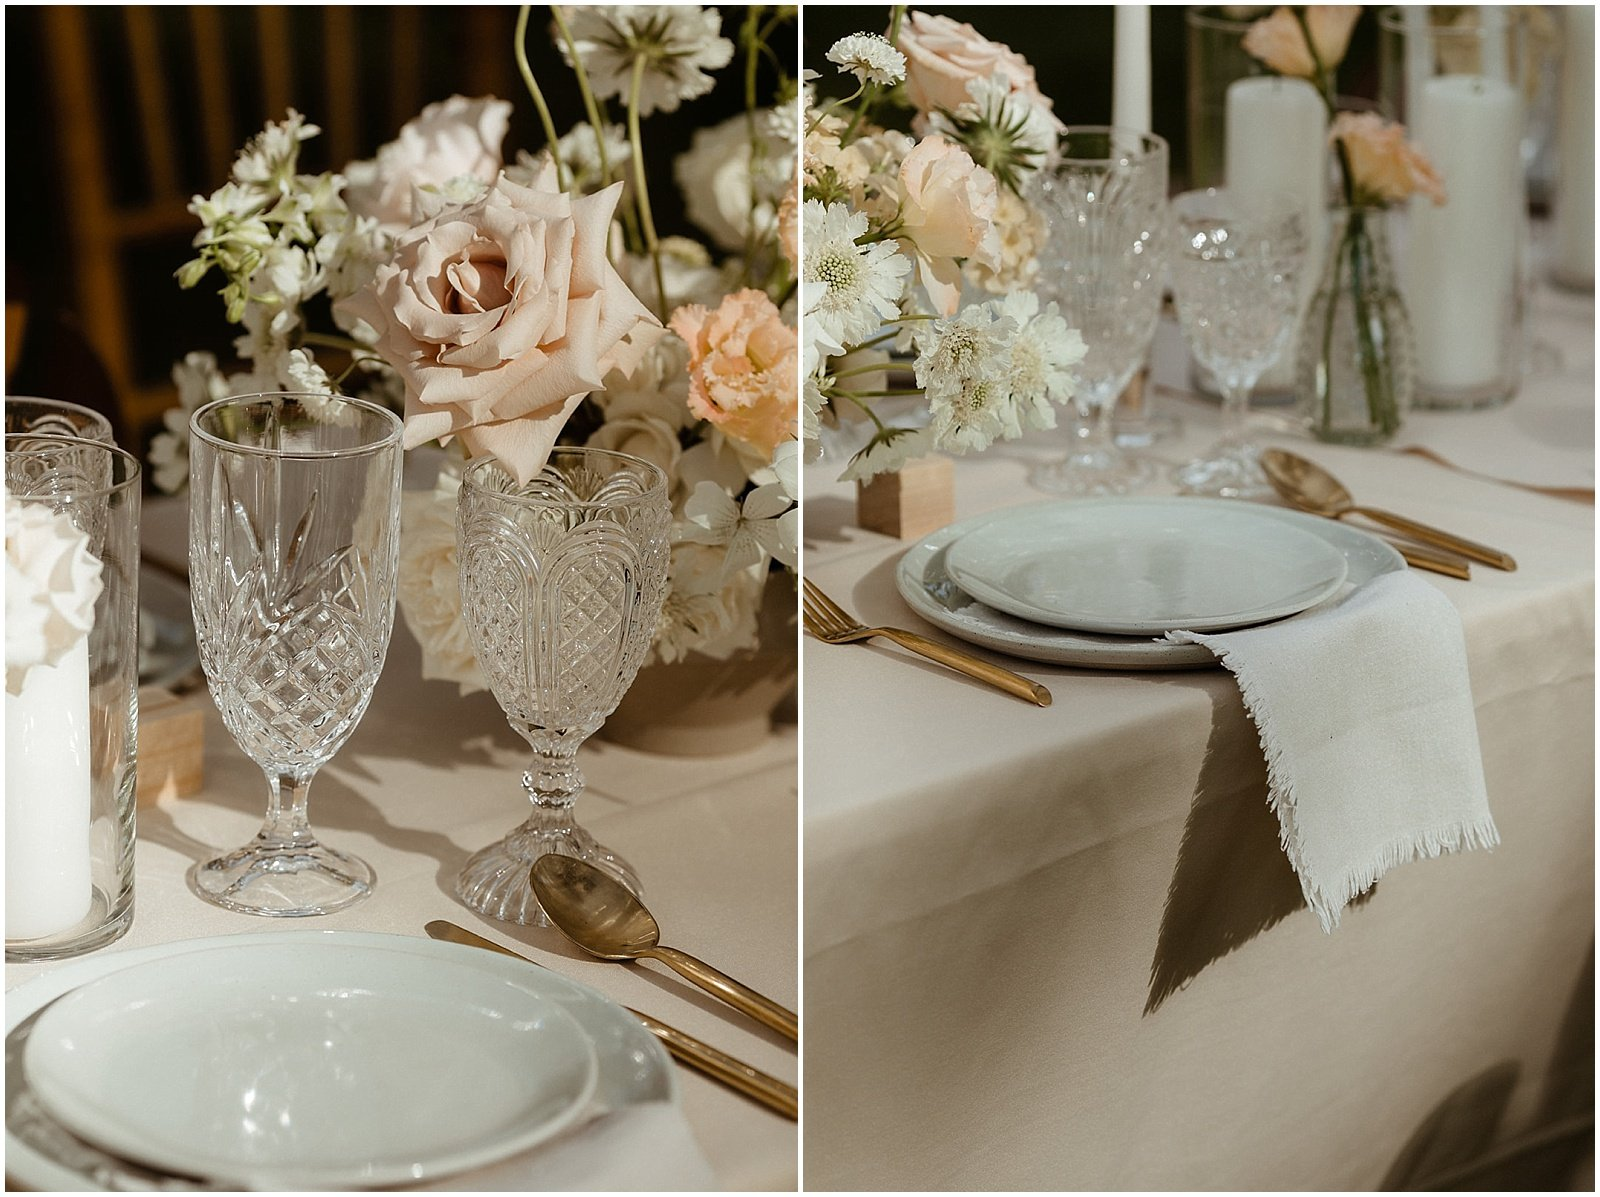 white and blush floral arrangements on reception tables for an Oregon Wedding at House on Metolius